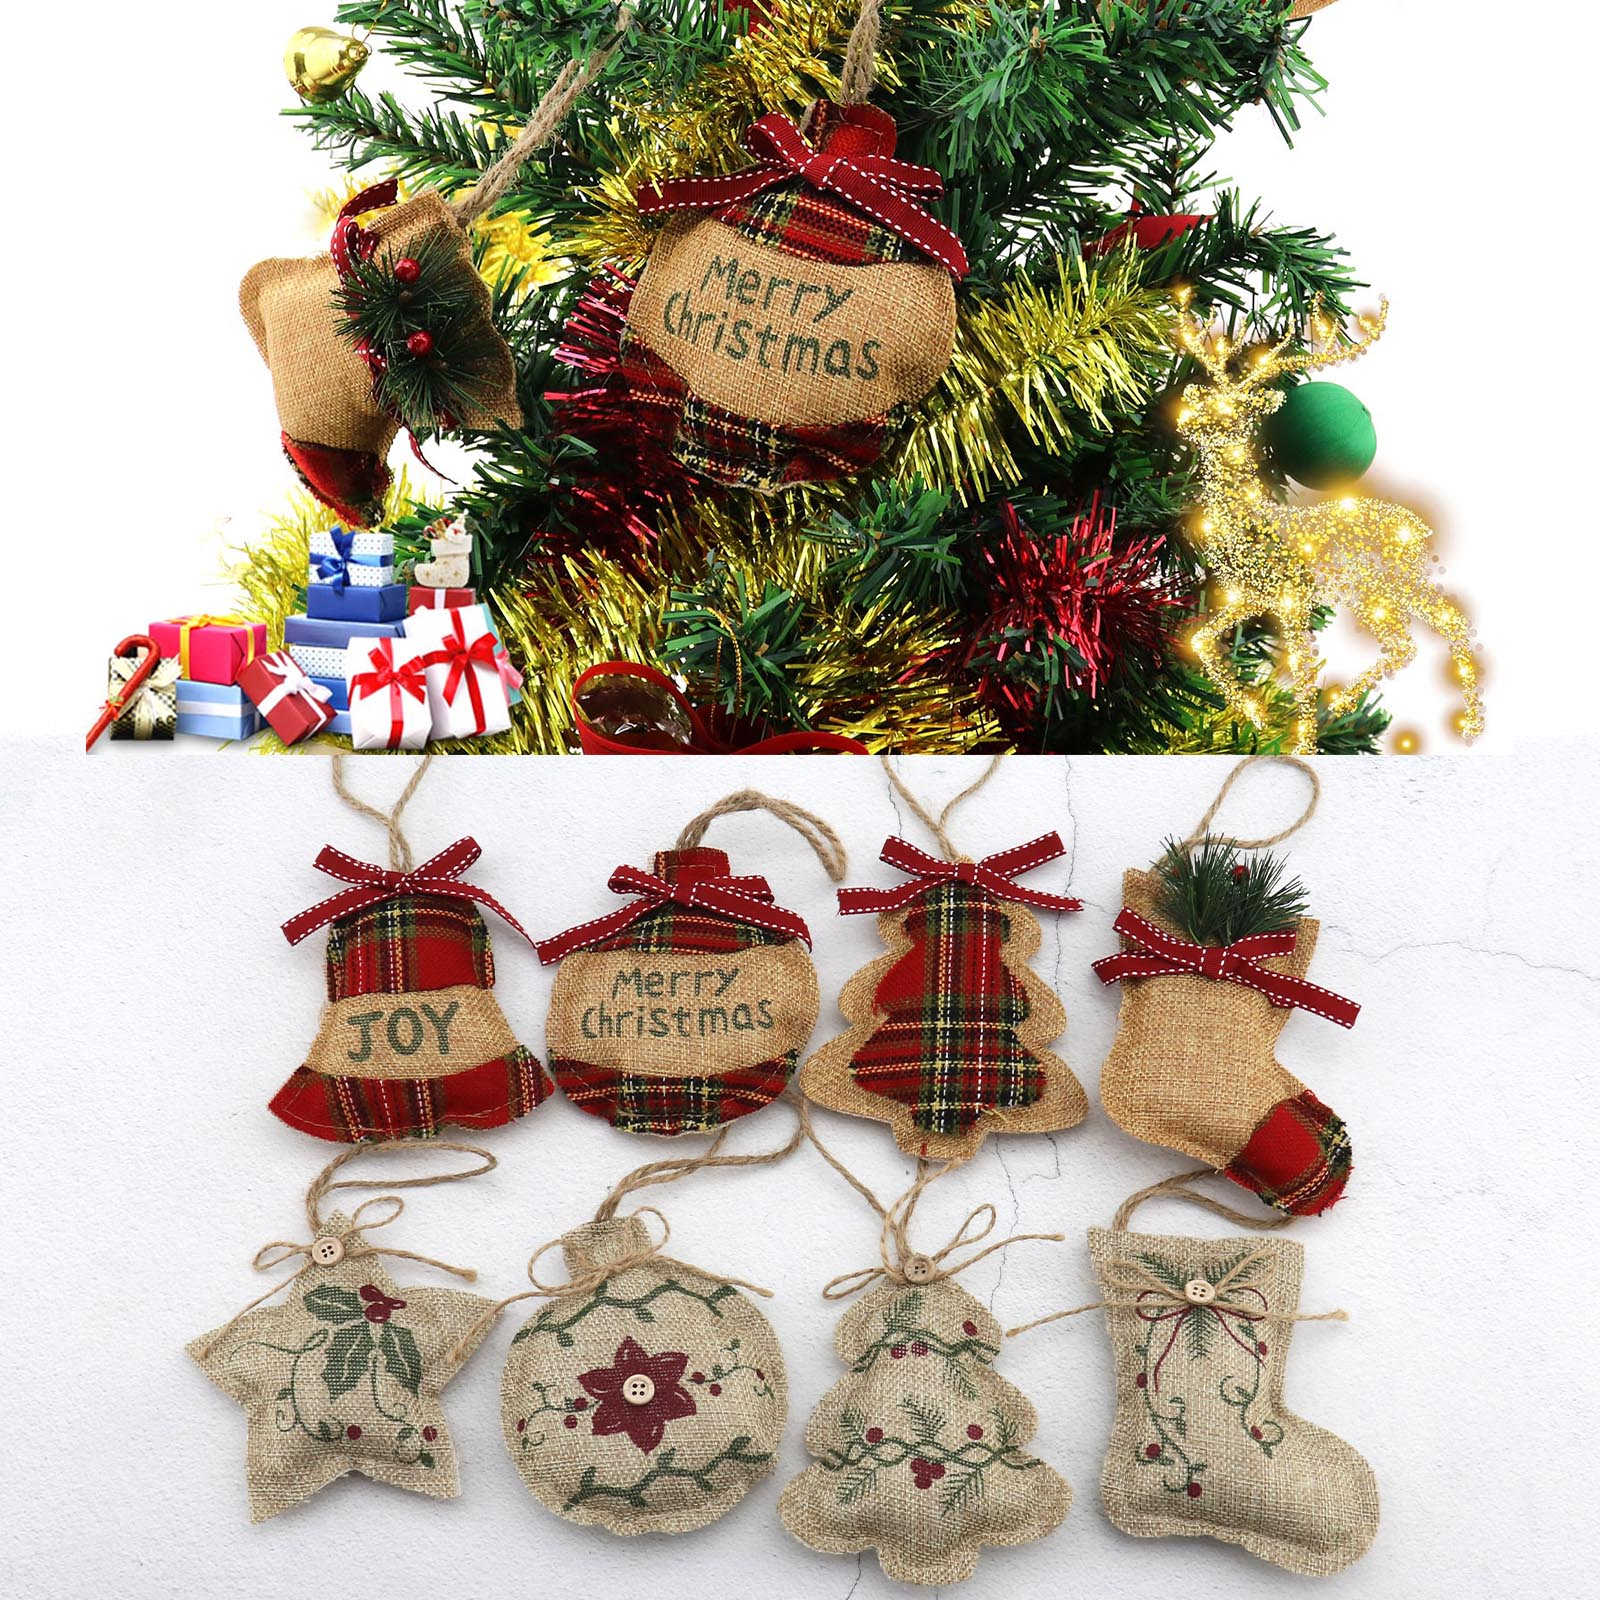 Rustic Christmas Tree Ornaments Stocking Decorations Burlap Country Ball Bell Ebay